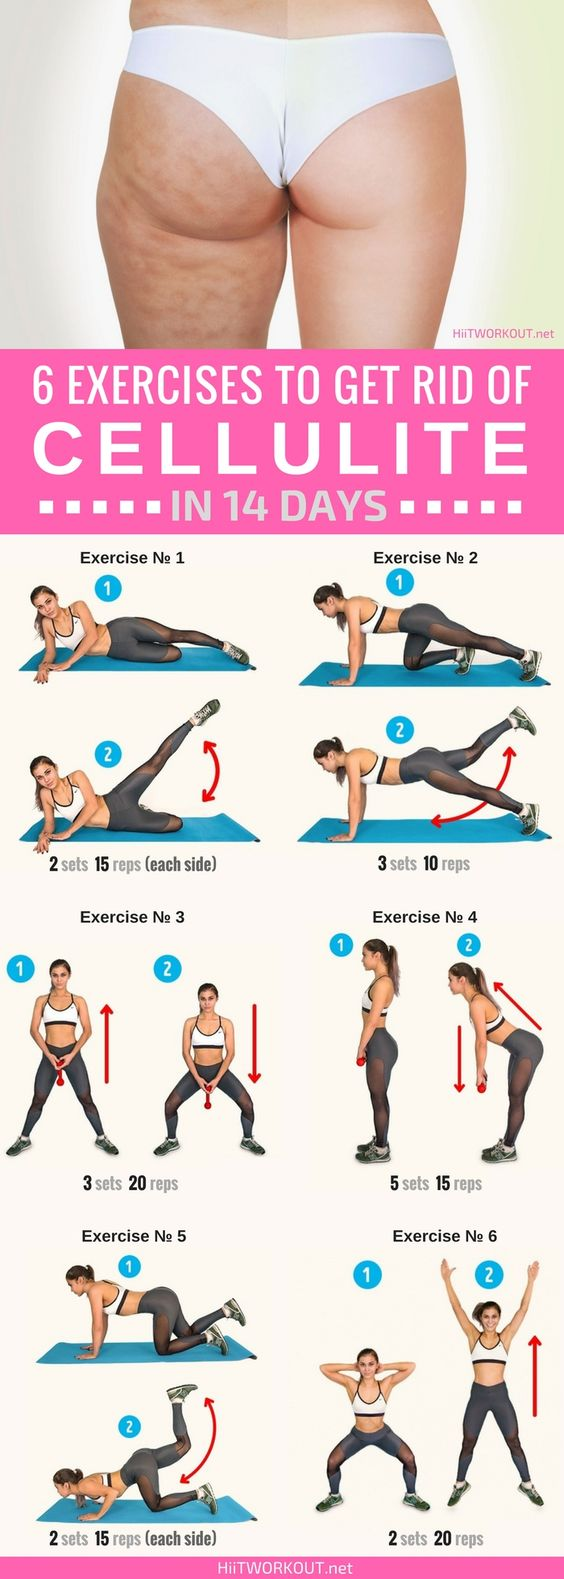 6 Exercises to Get Rid of Cellulite in 14 Days